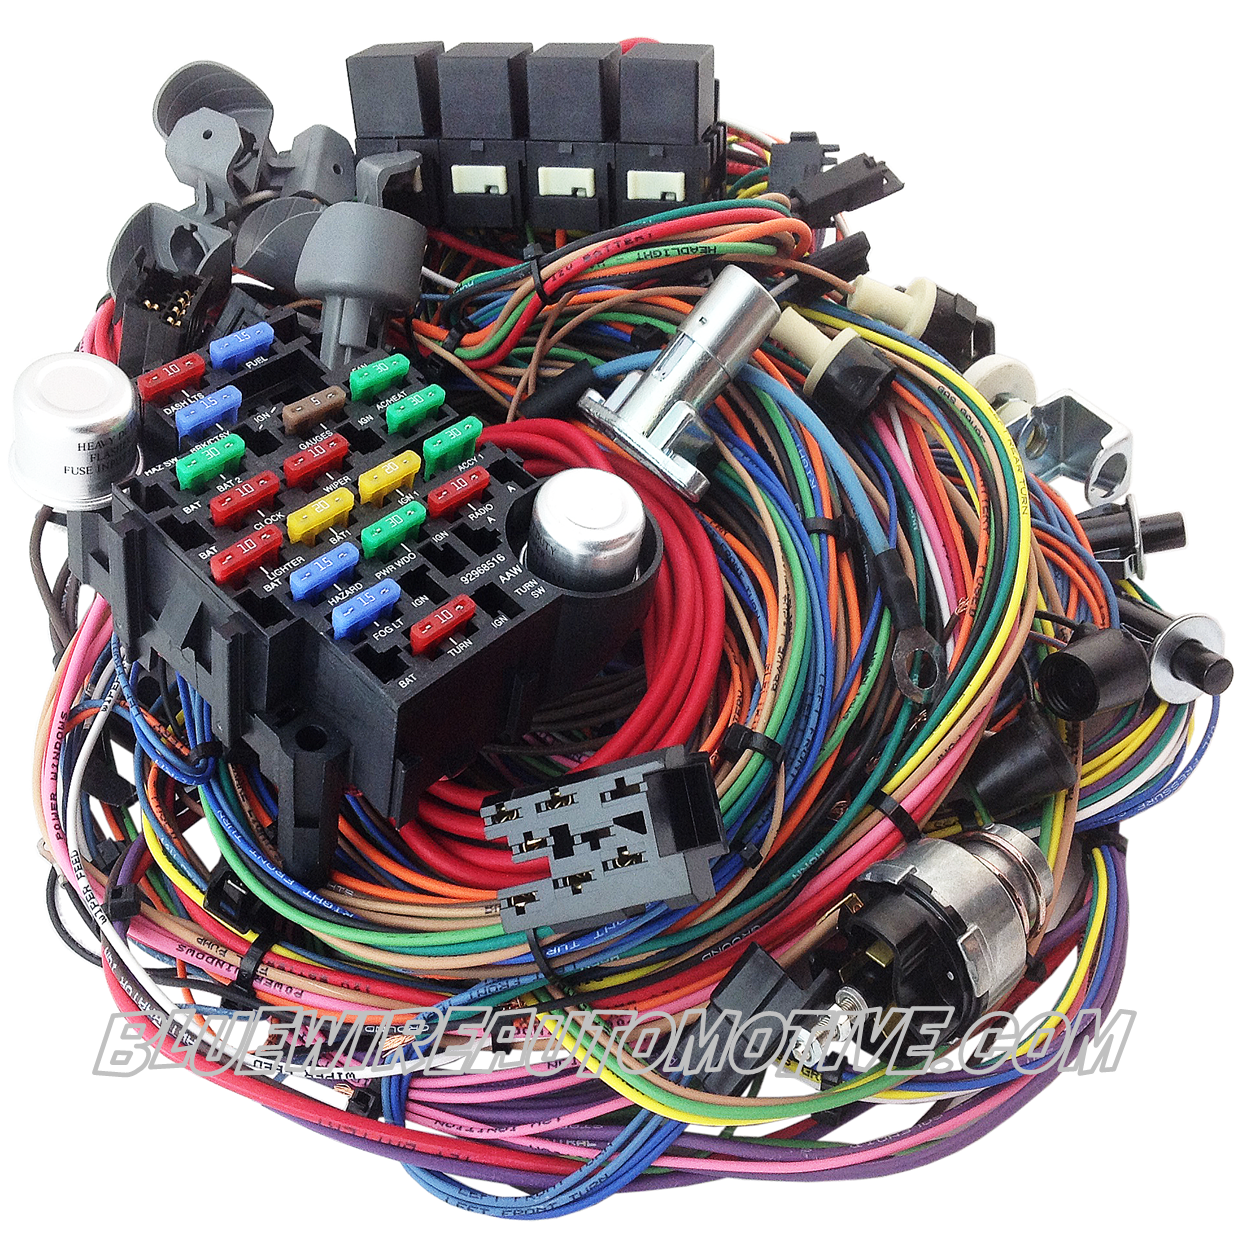 Bluewire Automotive - FORD F100 TRUCK 1967/72 COMPLETE CLASSIC UPDATE  SERIES WIRE HARNESS | Ford F100 Wiring Harness |  | Bluewire Automotive